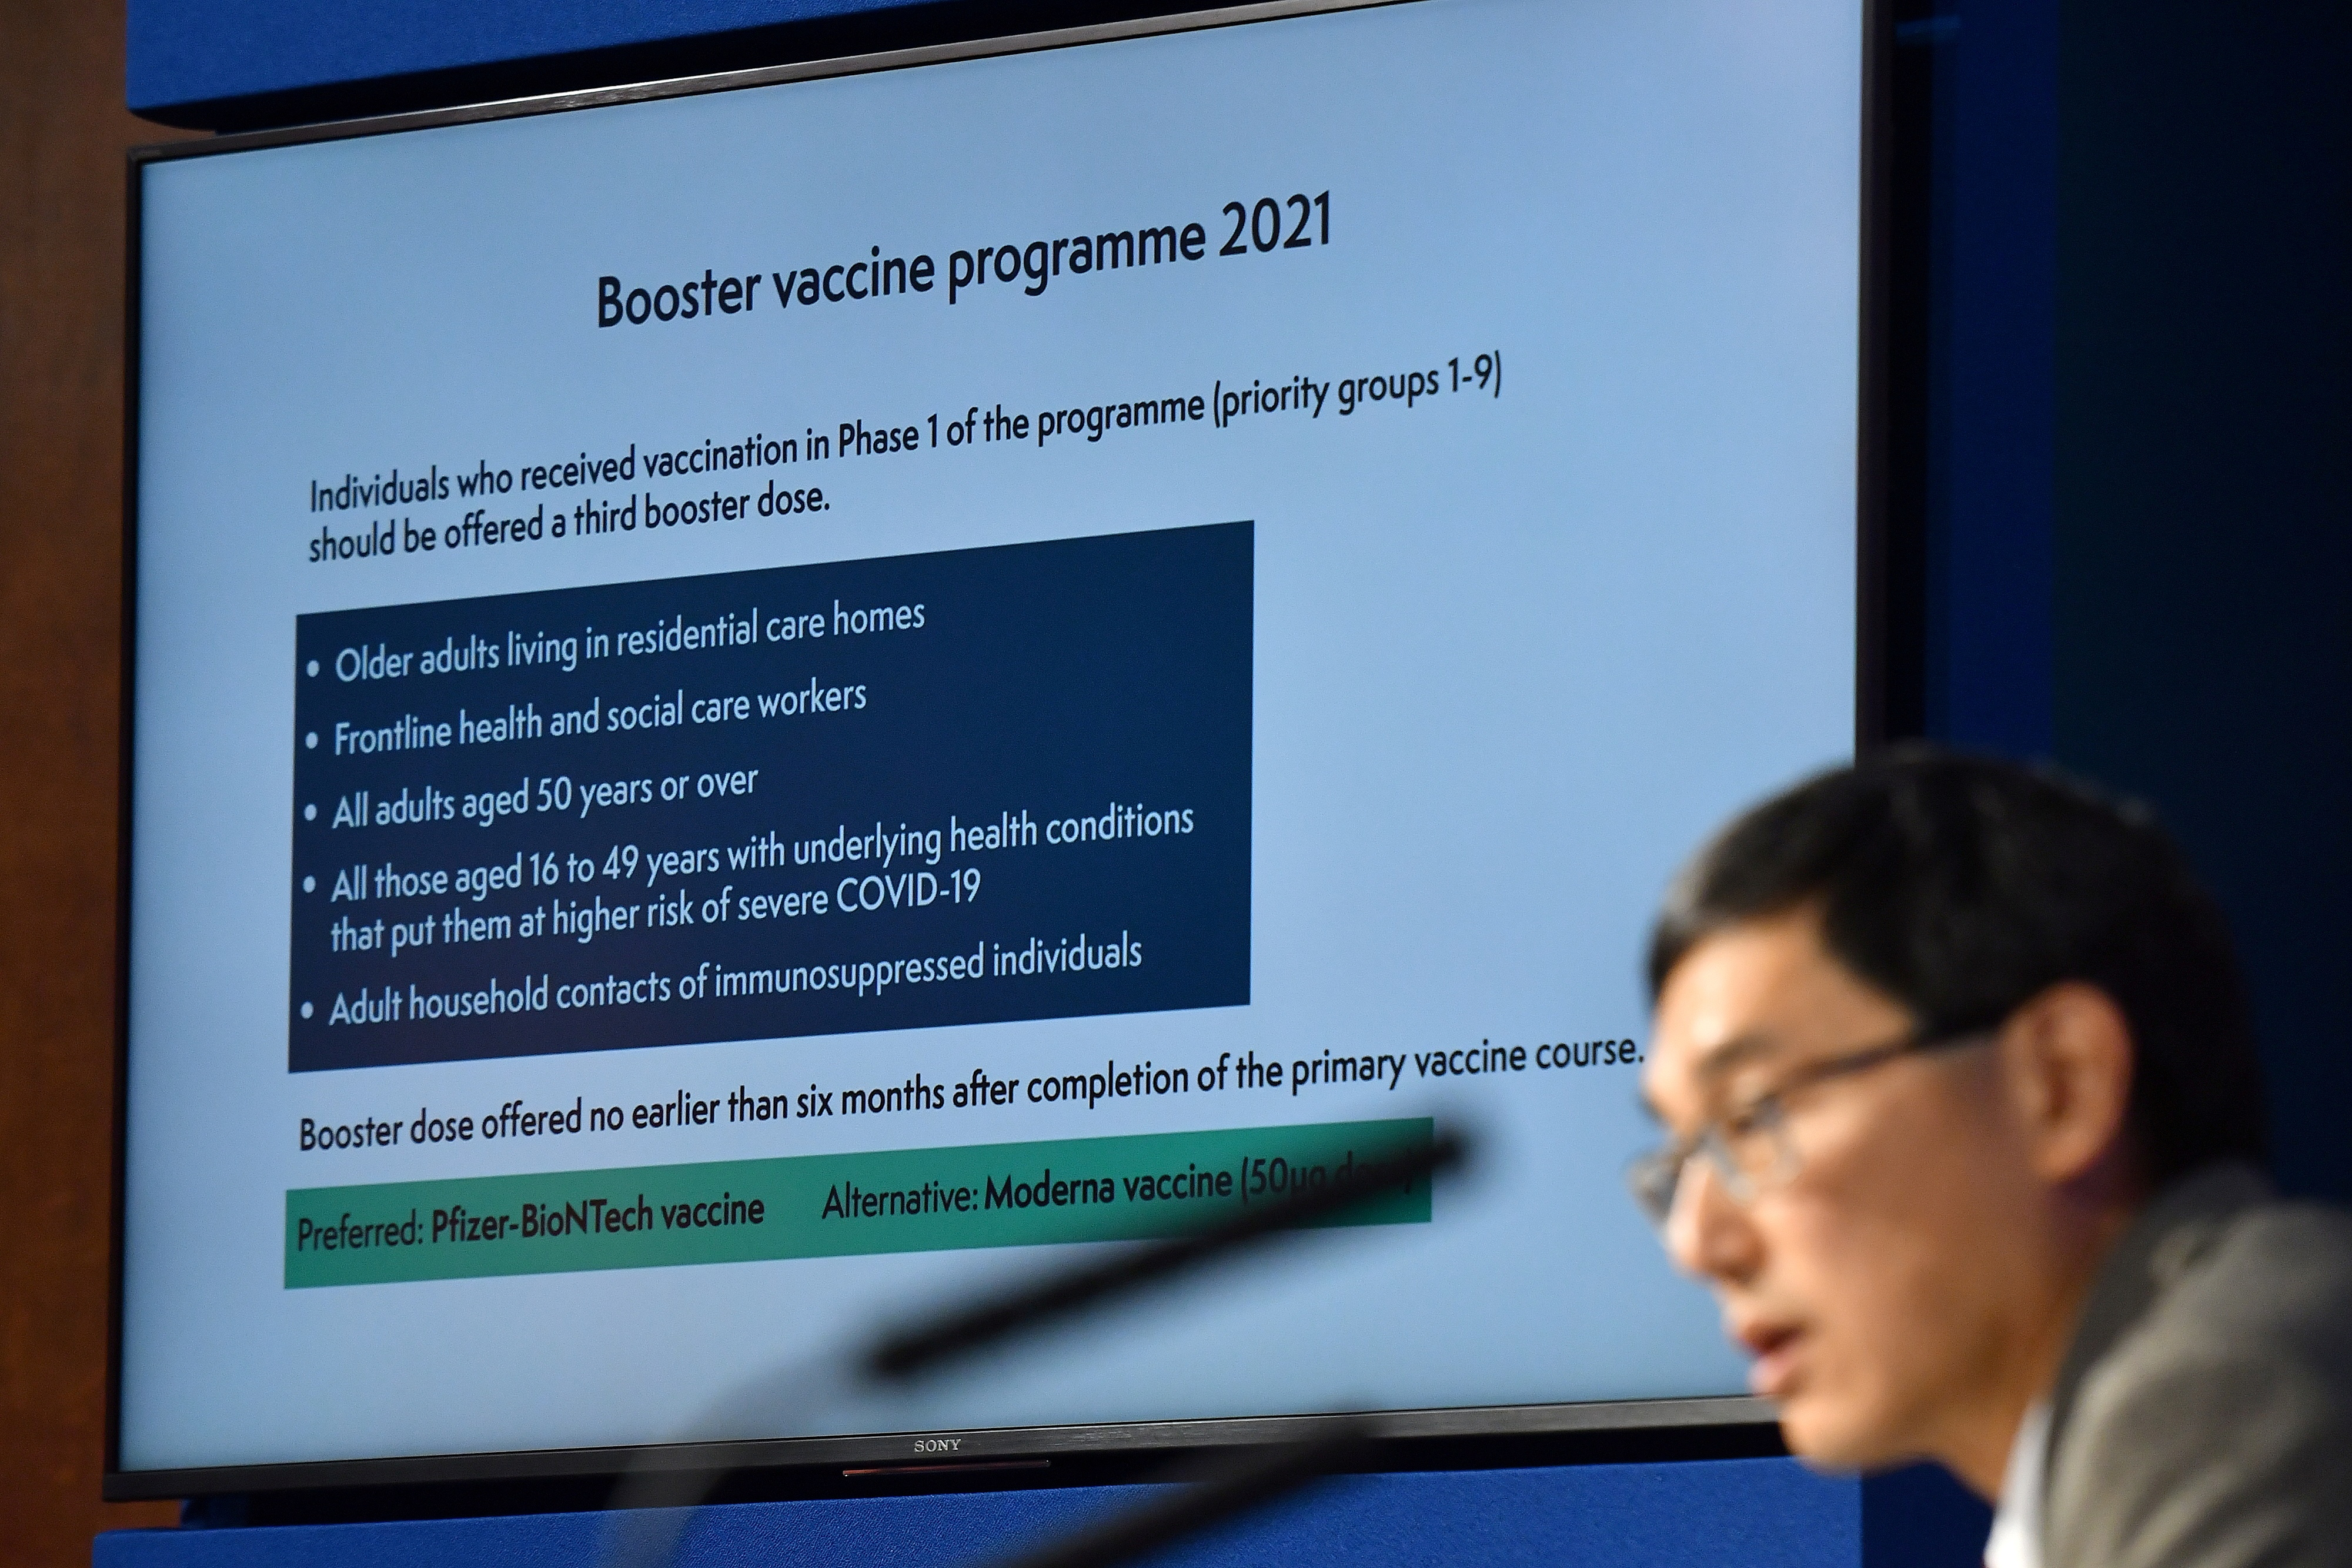 Chair of the Joint Committee on Vaccination and Immunisation (JCVI) Professor Wei Shen Lim attends a media briefing on COVID-19 at Downing Street in London, Britain September 14, 2021.  Justin Tallis/Pool via REUTERS